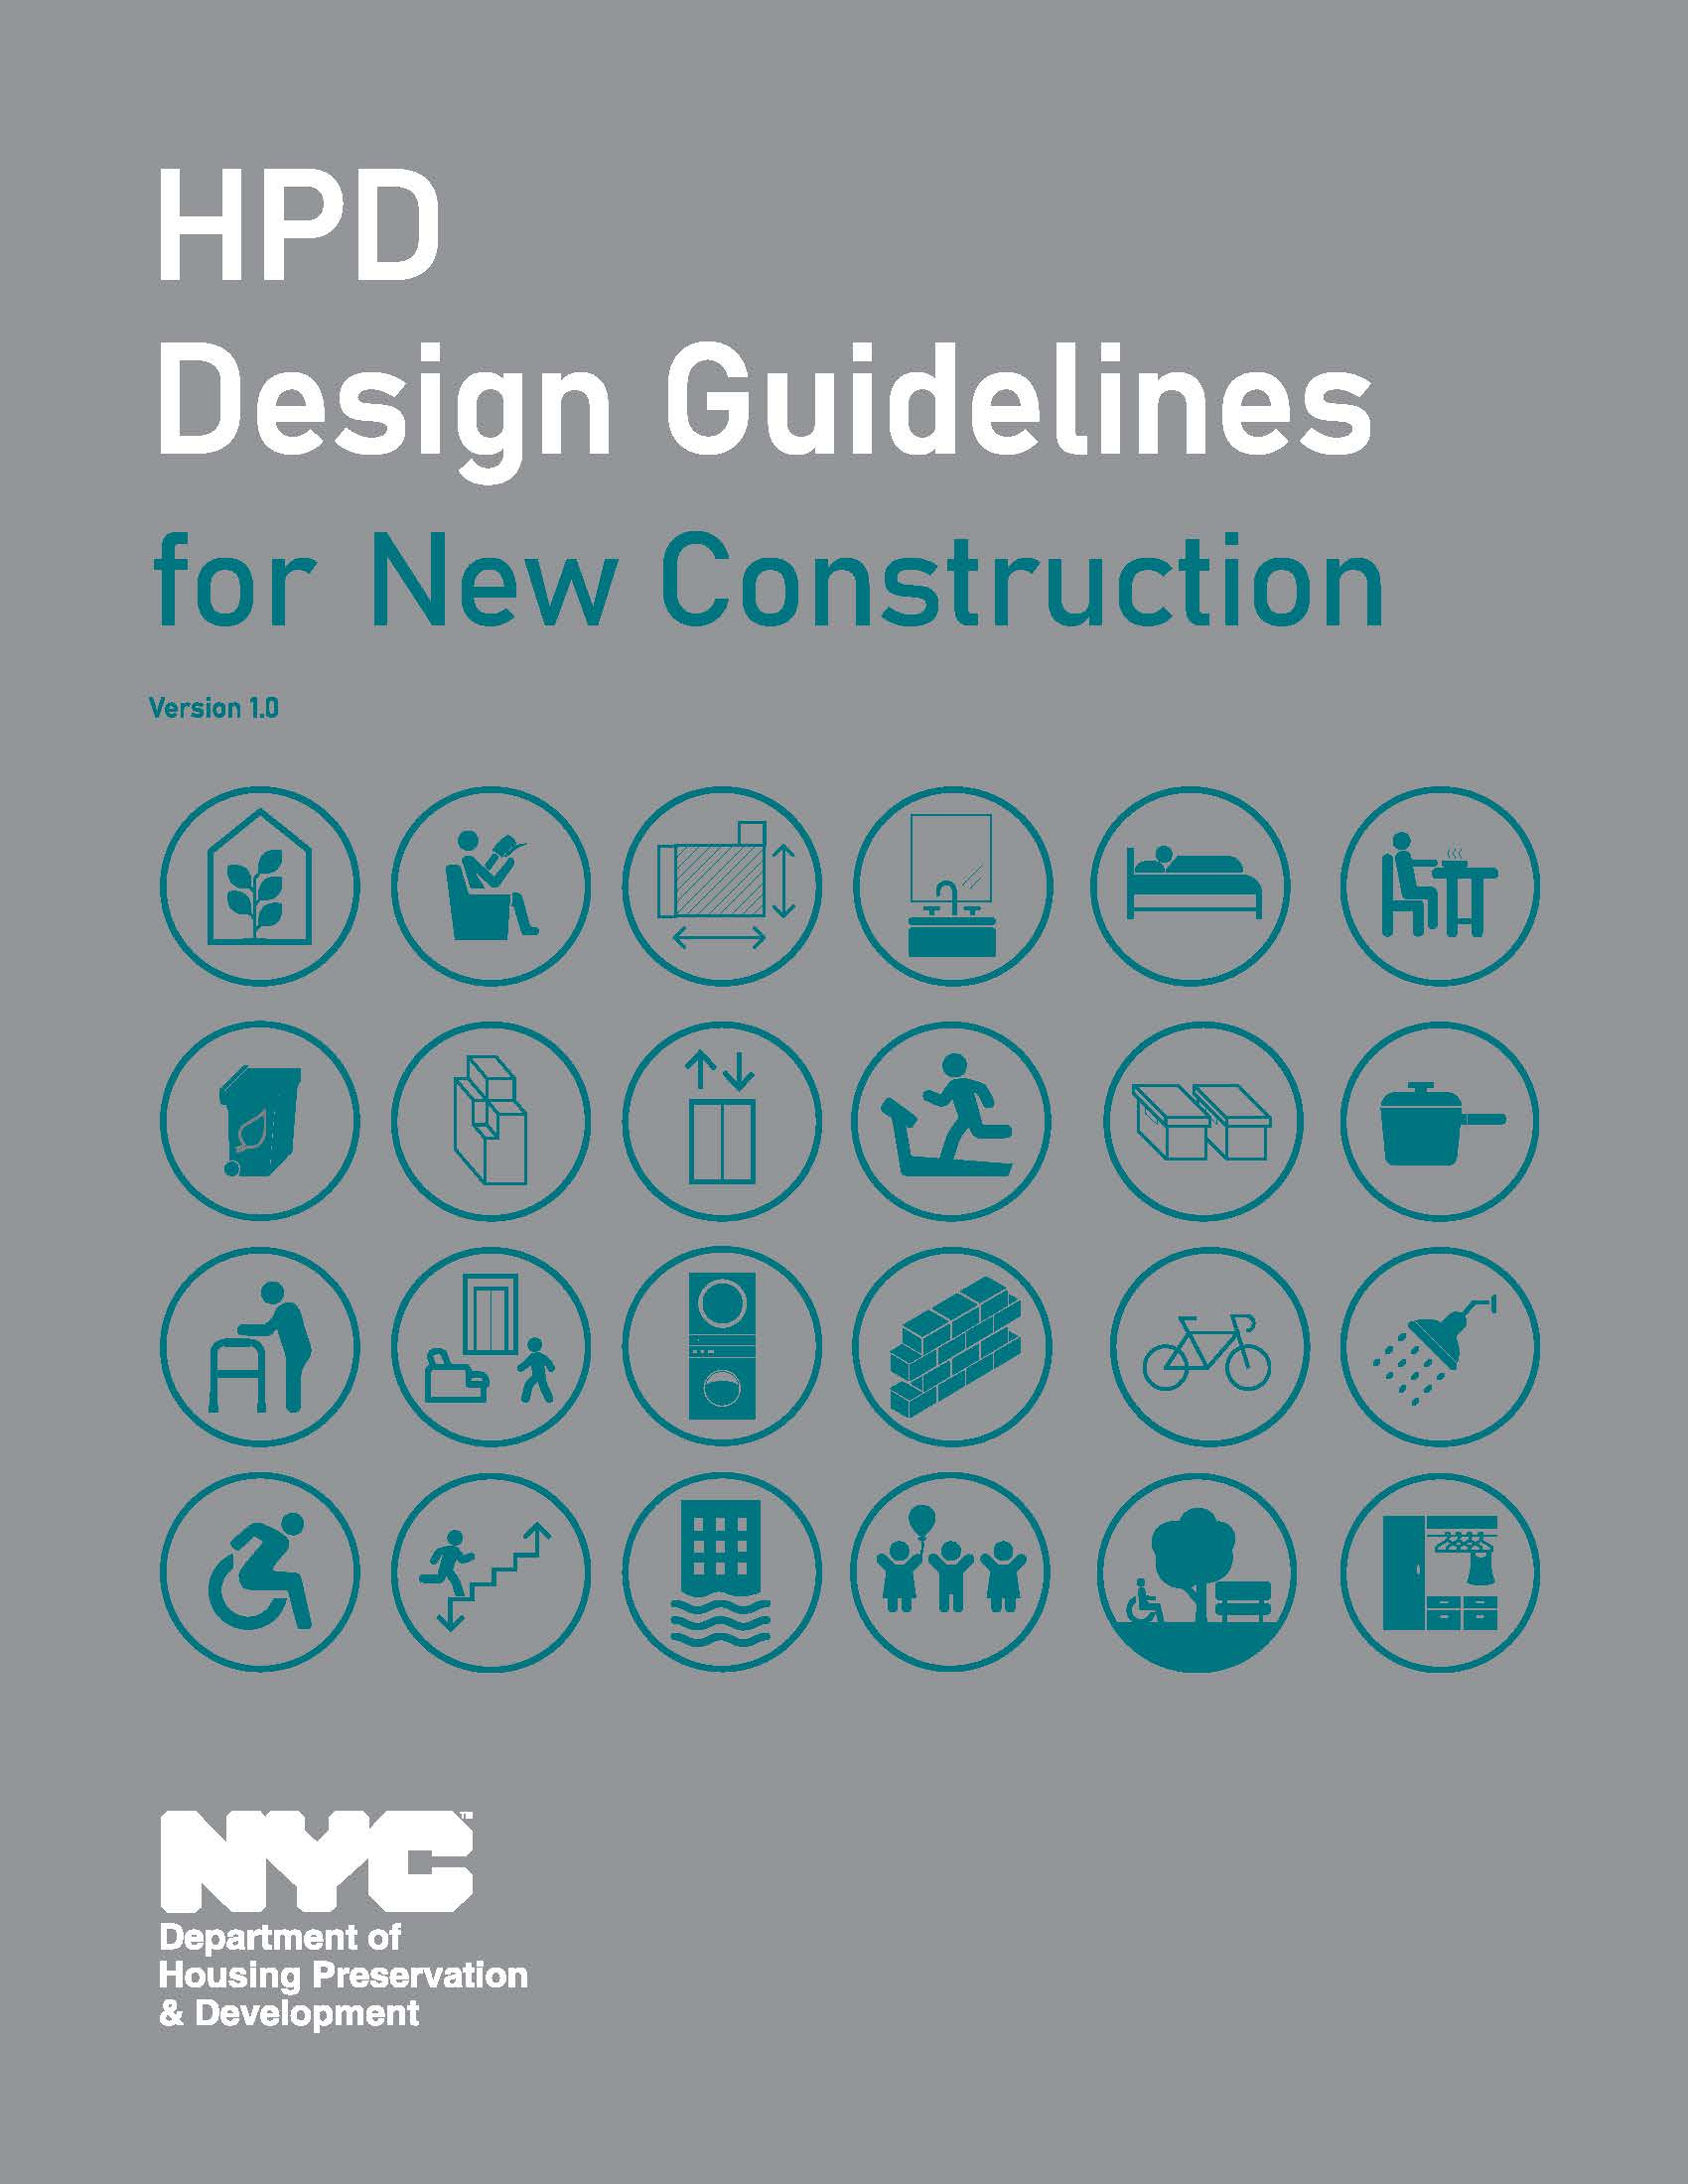 HPD Design Guidelines cover page.